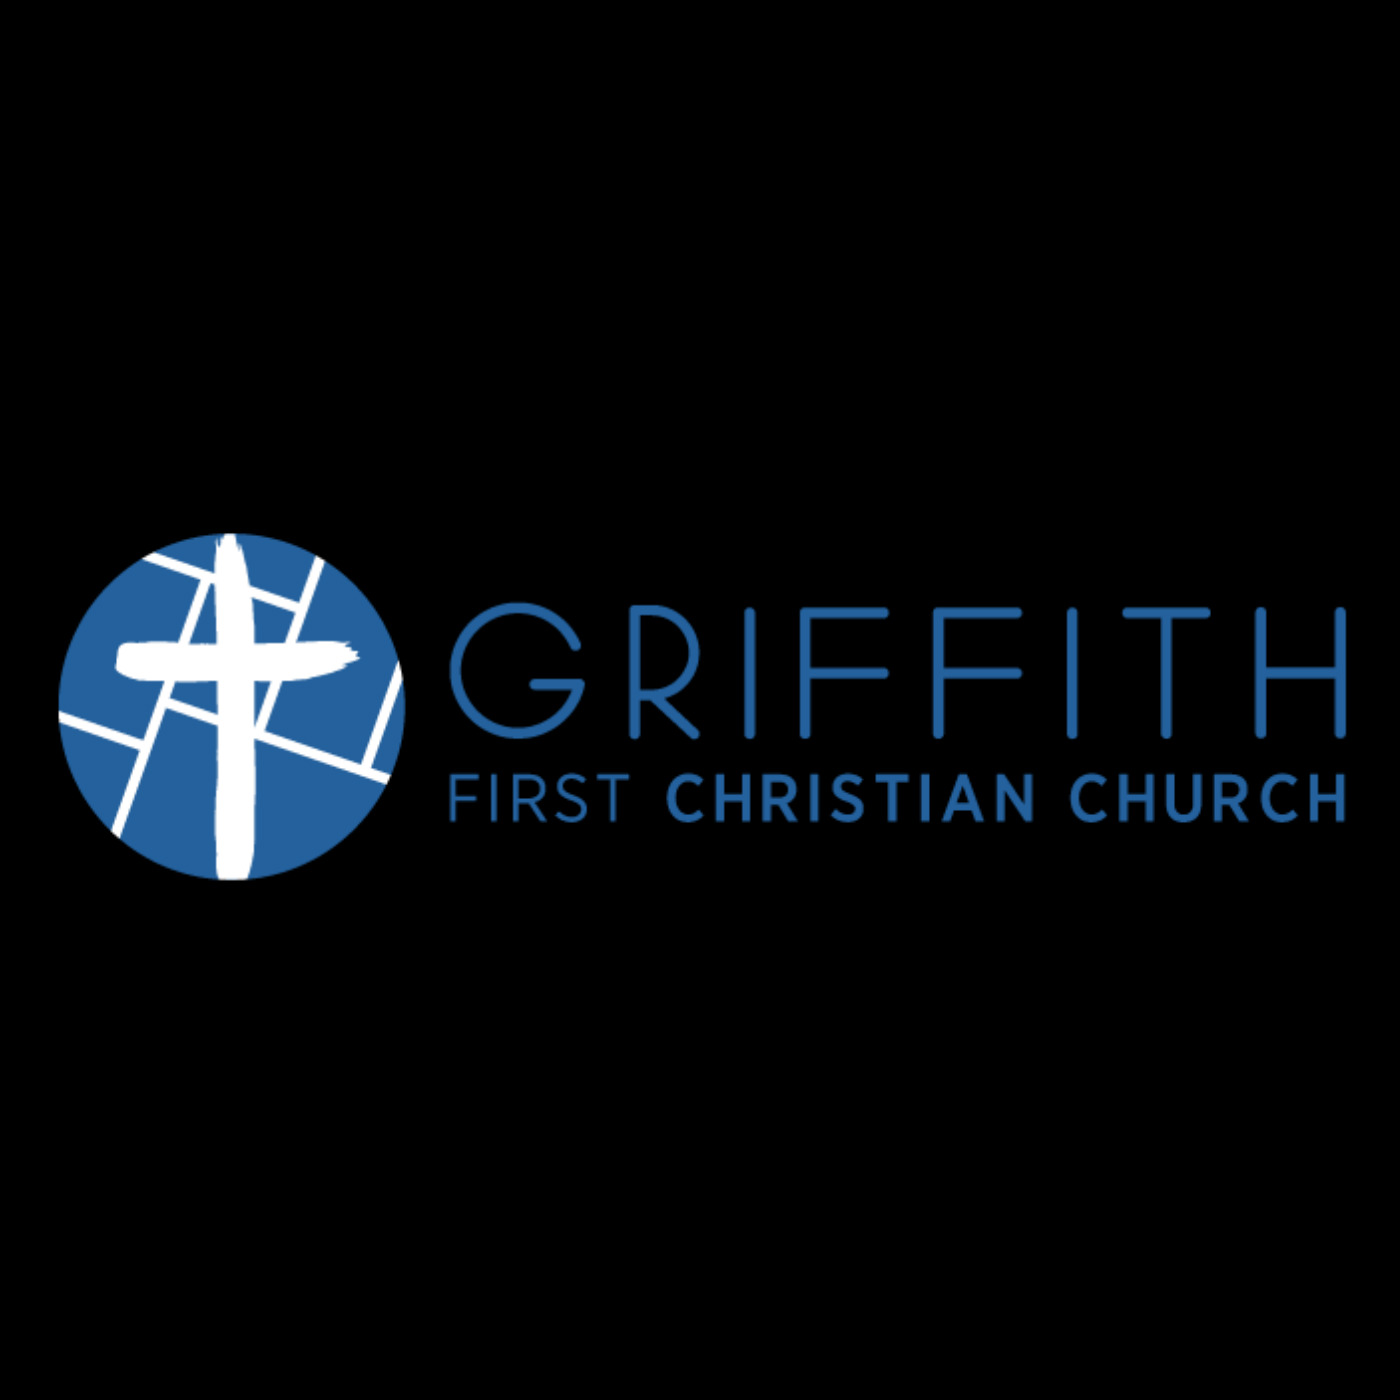 Griffith First Christian Church